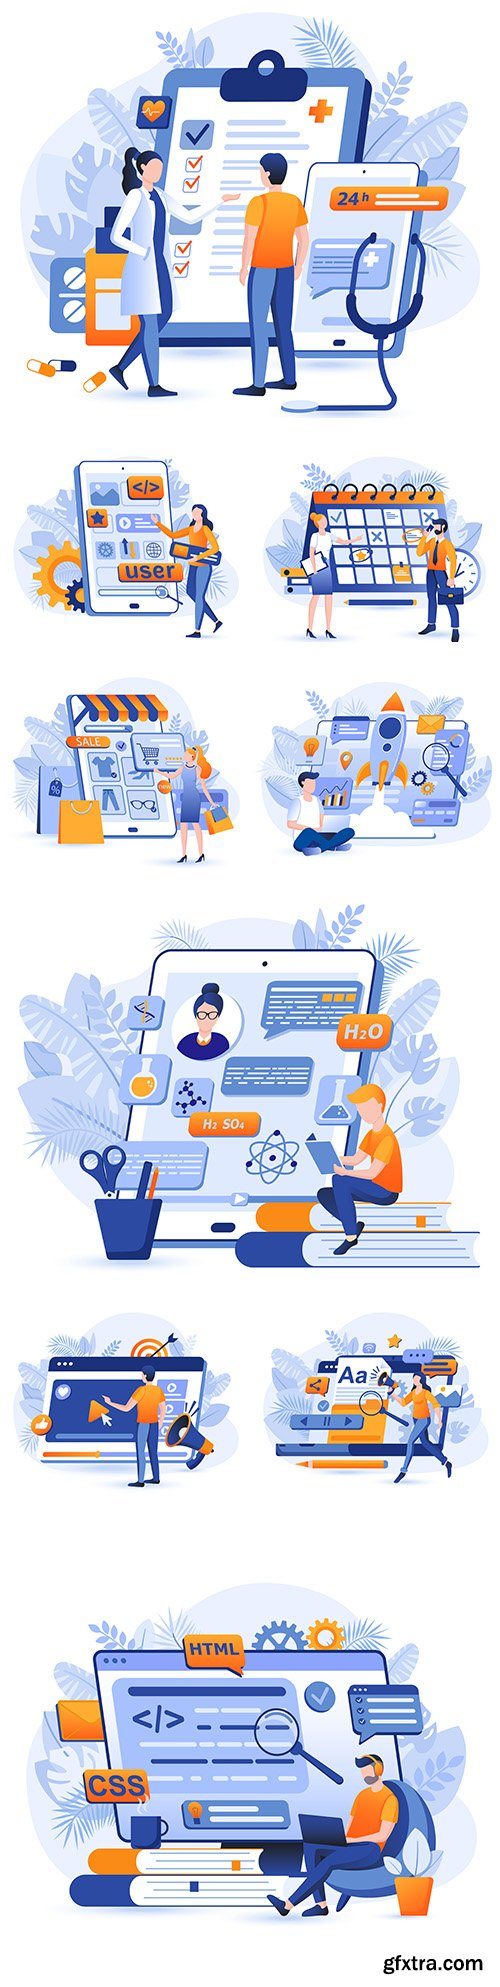 Business planning and online store flat design illustration concept